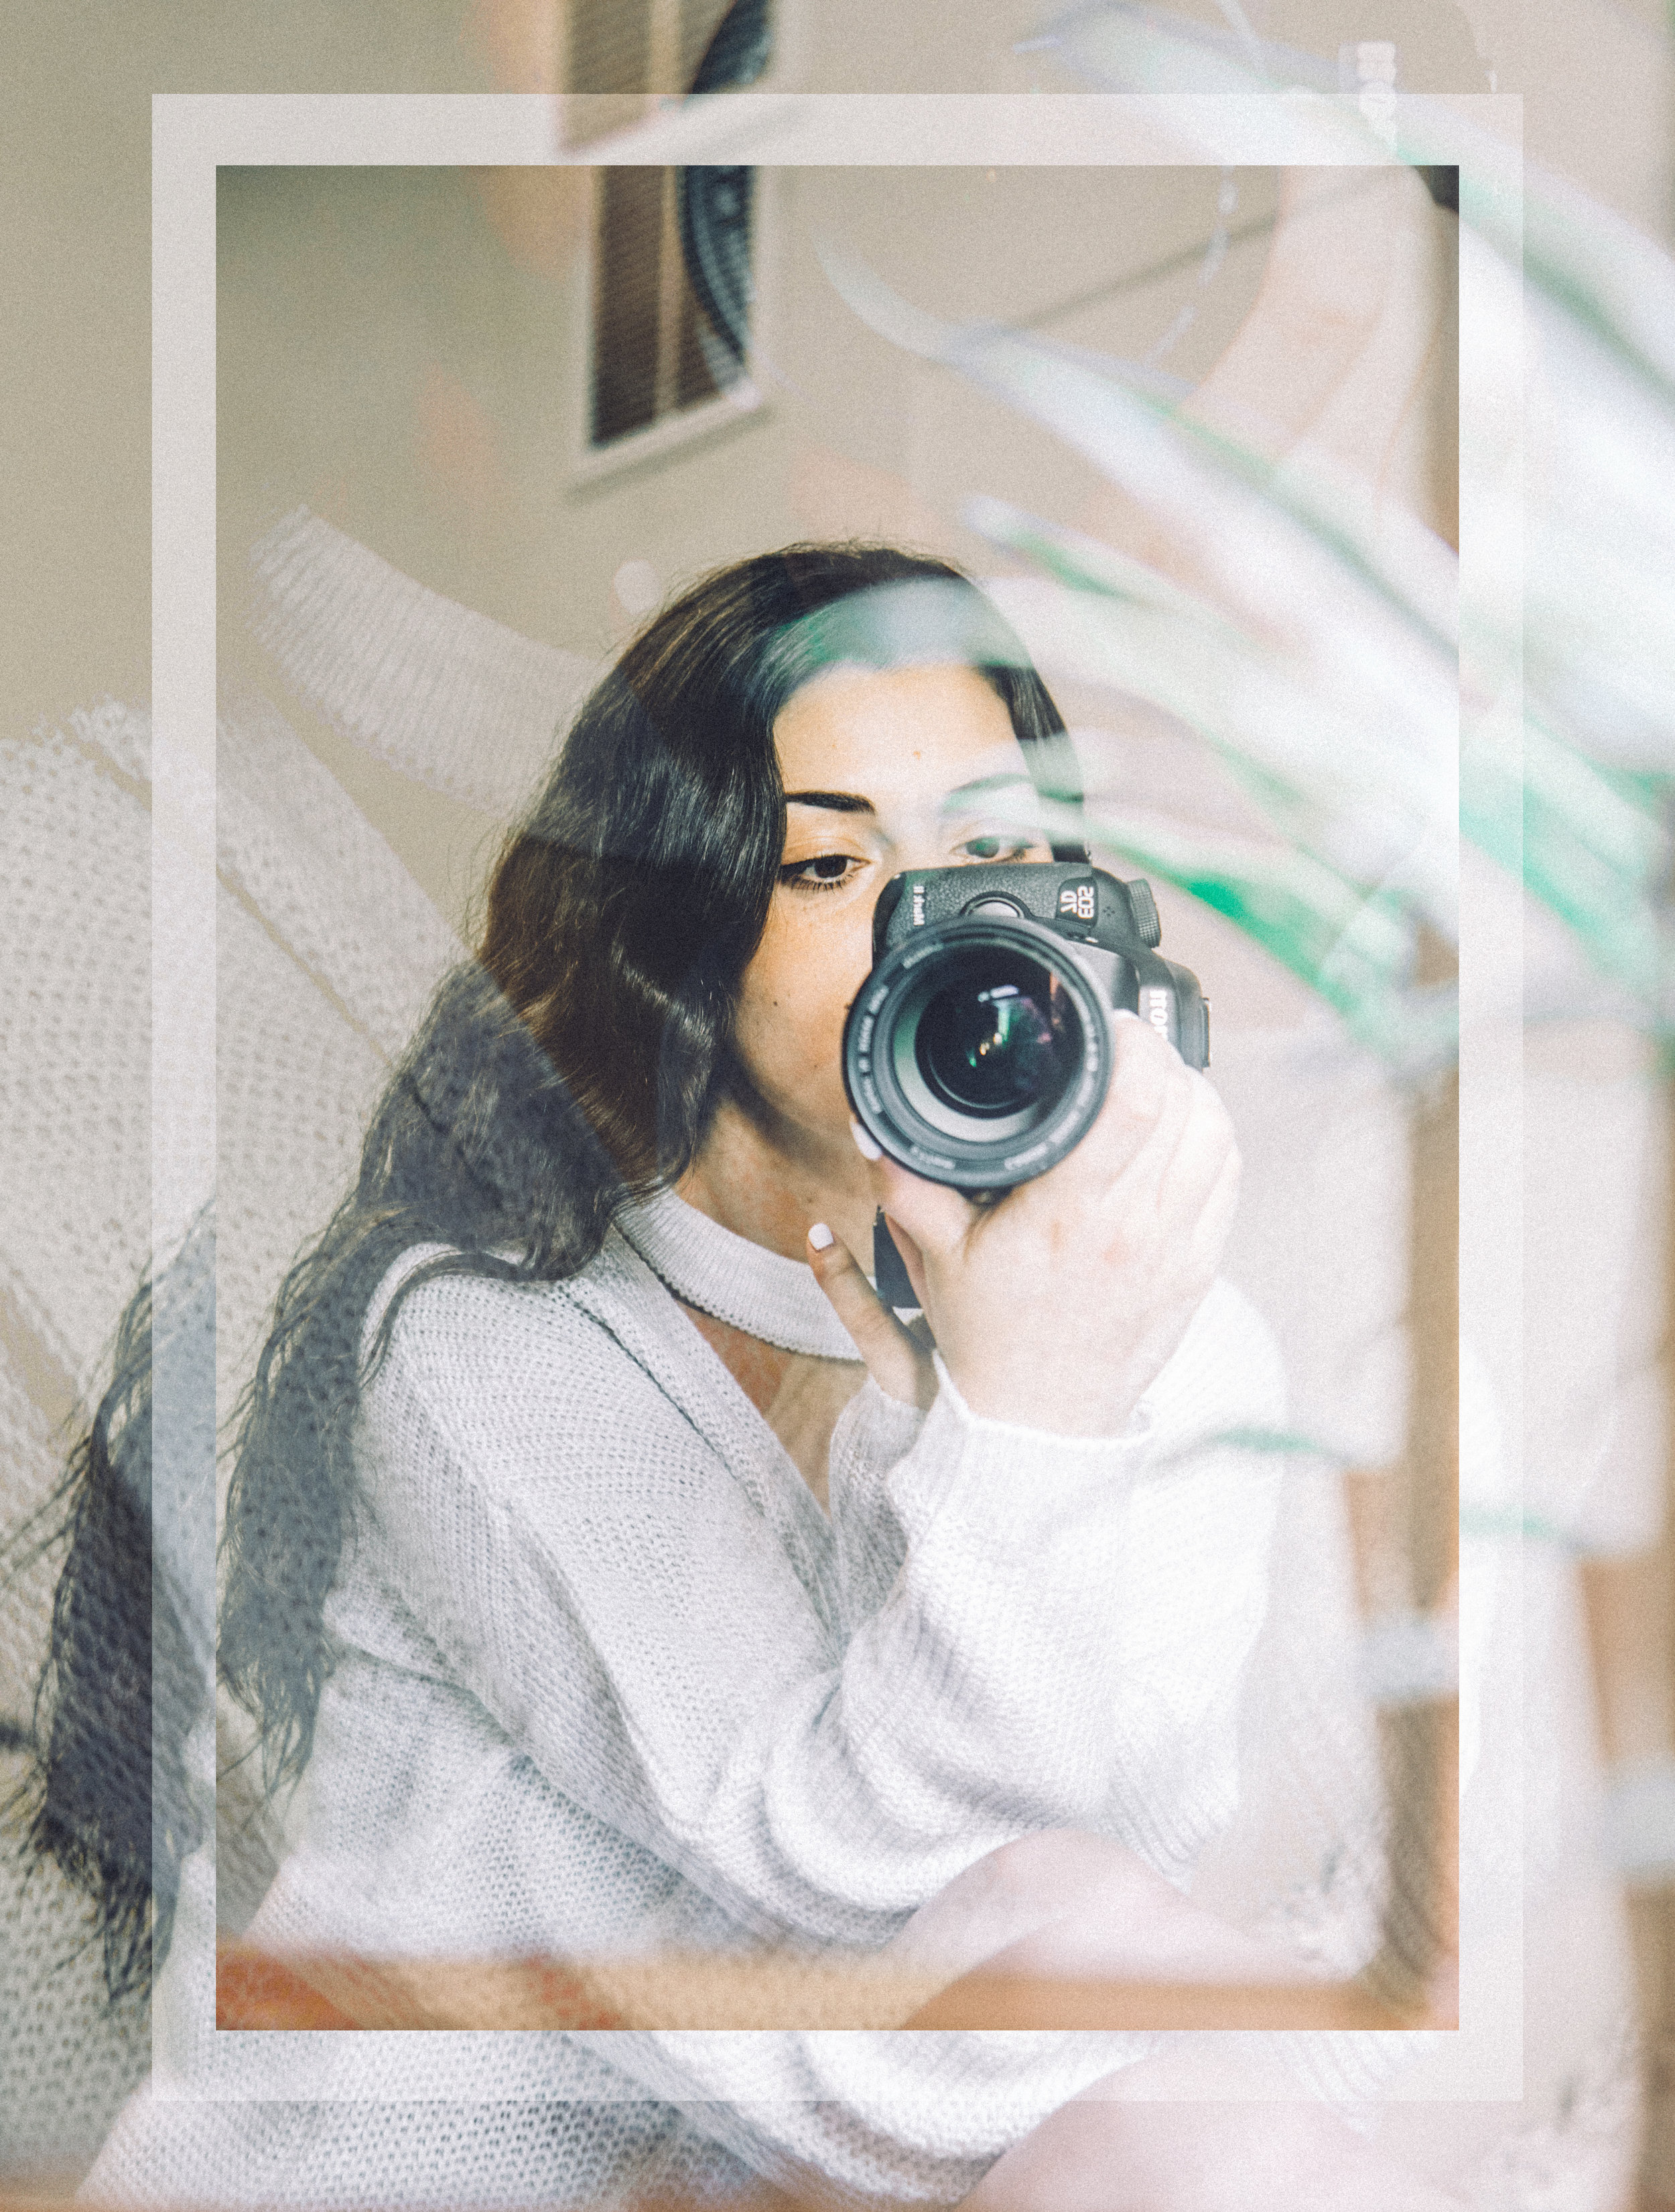 About Me - I am a New York based content creator specializing in photography, stop motion animations, and cinemagraphs for brands, businesses, bloggers and creatives.Want to work together? // ilanastraussphoto@gmail.com